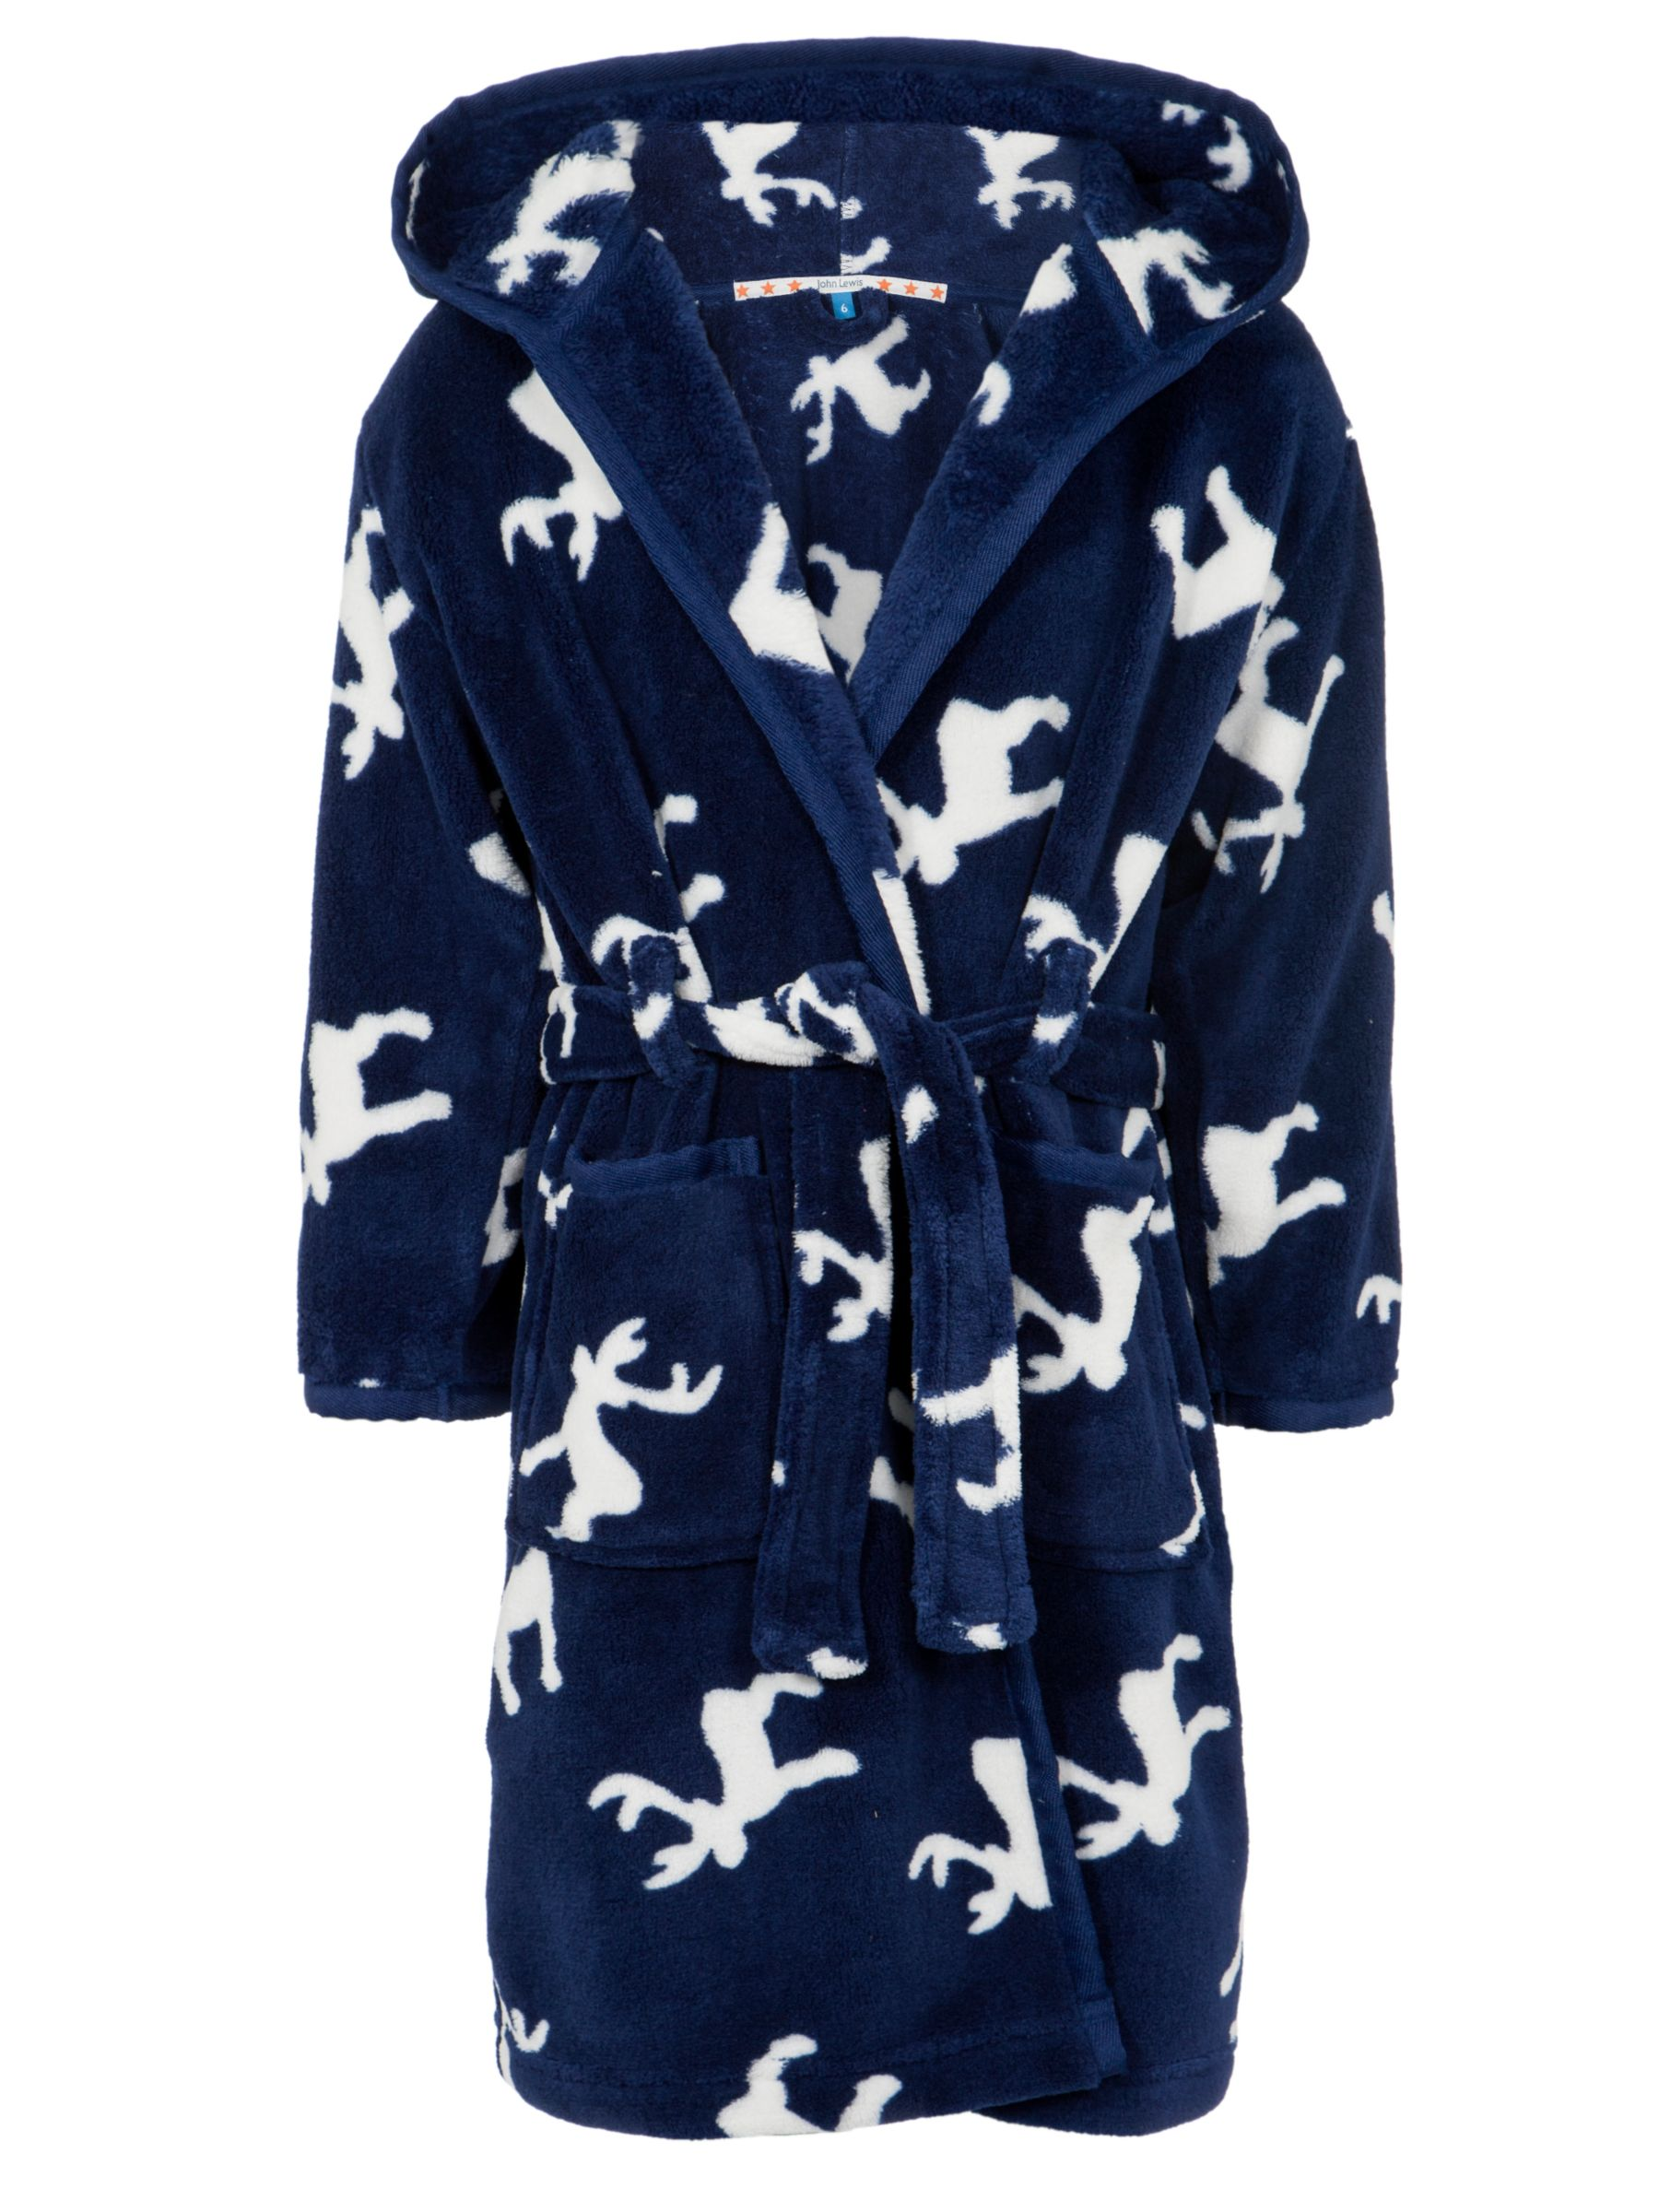 John Lewis Boy Reindeer Robe, Navy/Cream